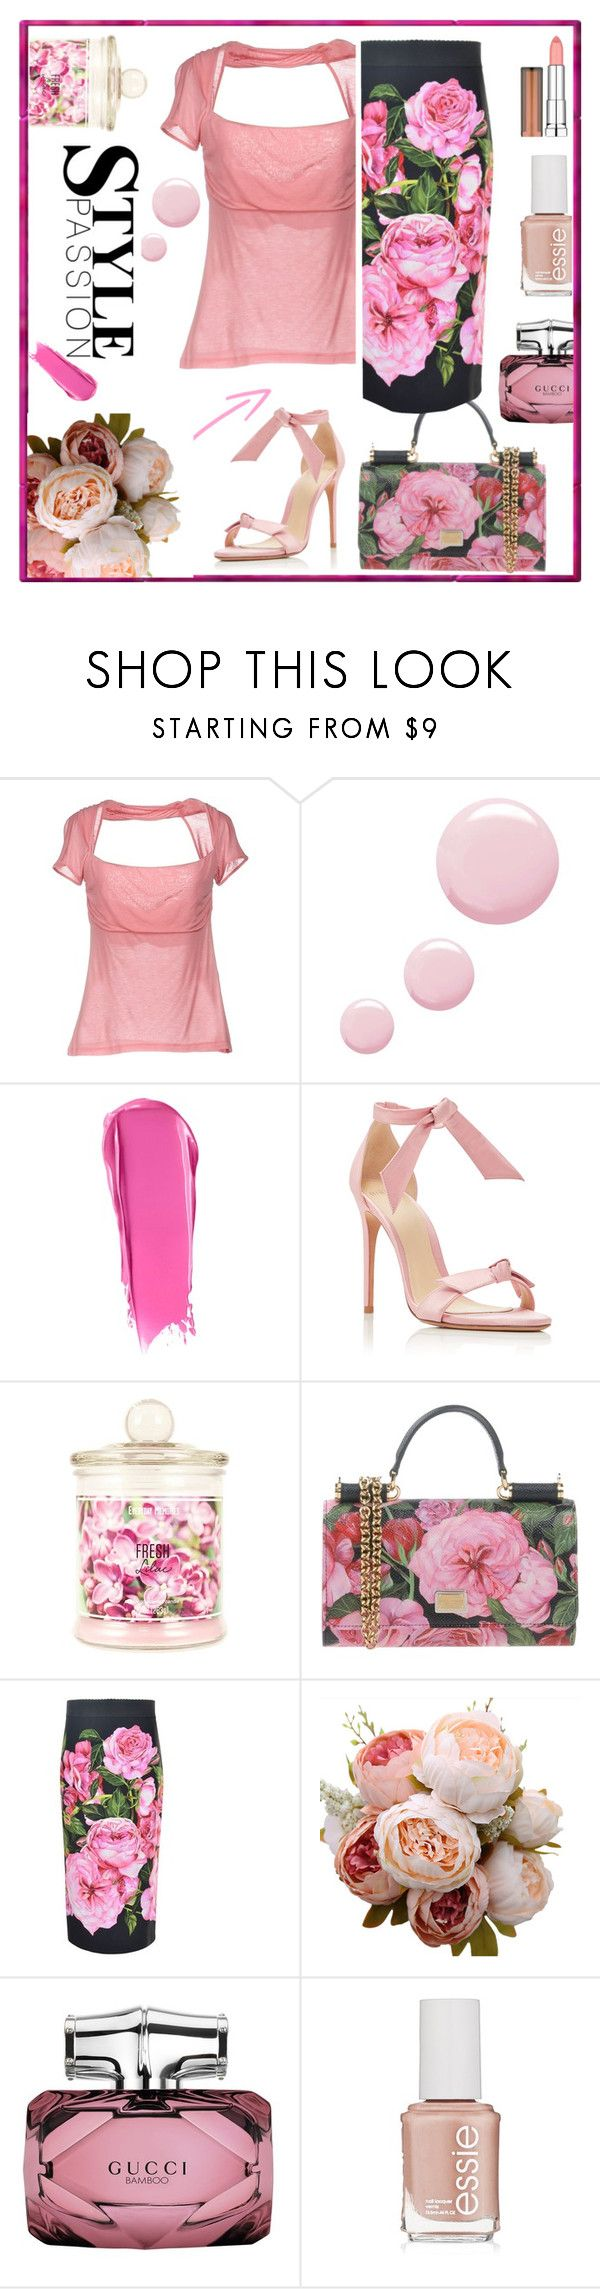 """Pink wave"" by sara-cdth ❤ liked on Polyvore featuring RED Valentino, Topshop, Liberty, Alexandre Birman, Dolce&Gabbana, Gucci, Essie and Maybelline"